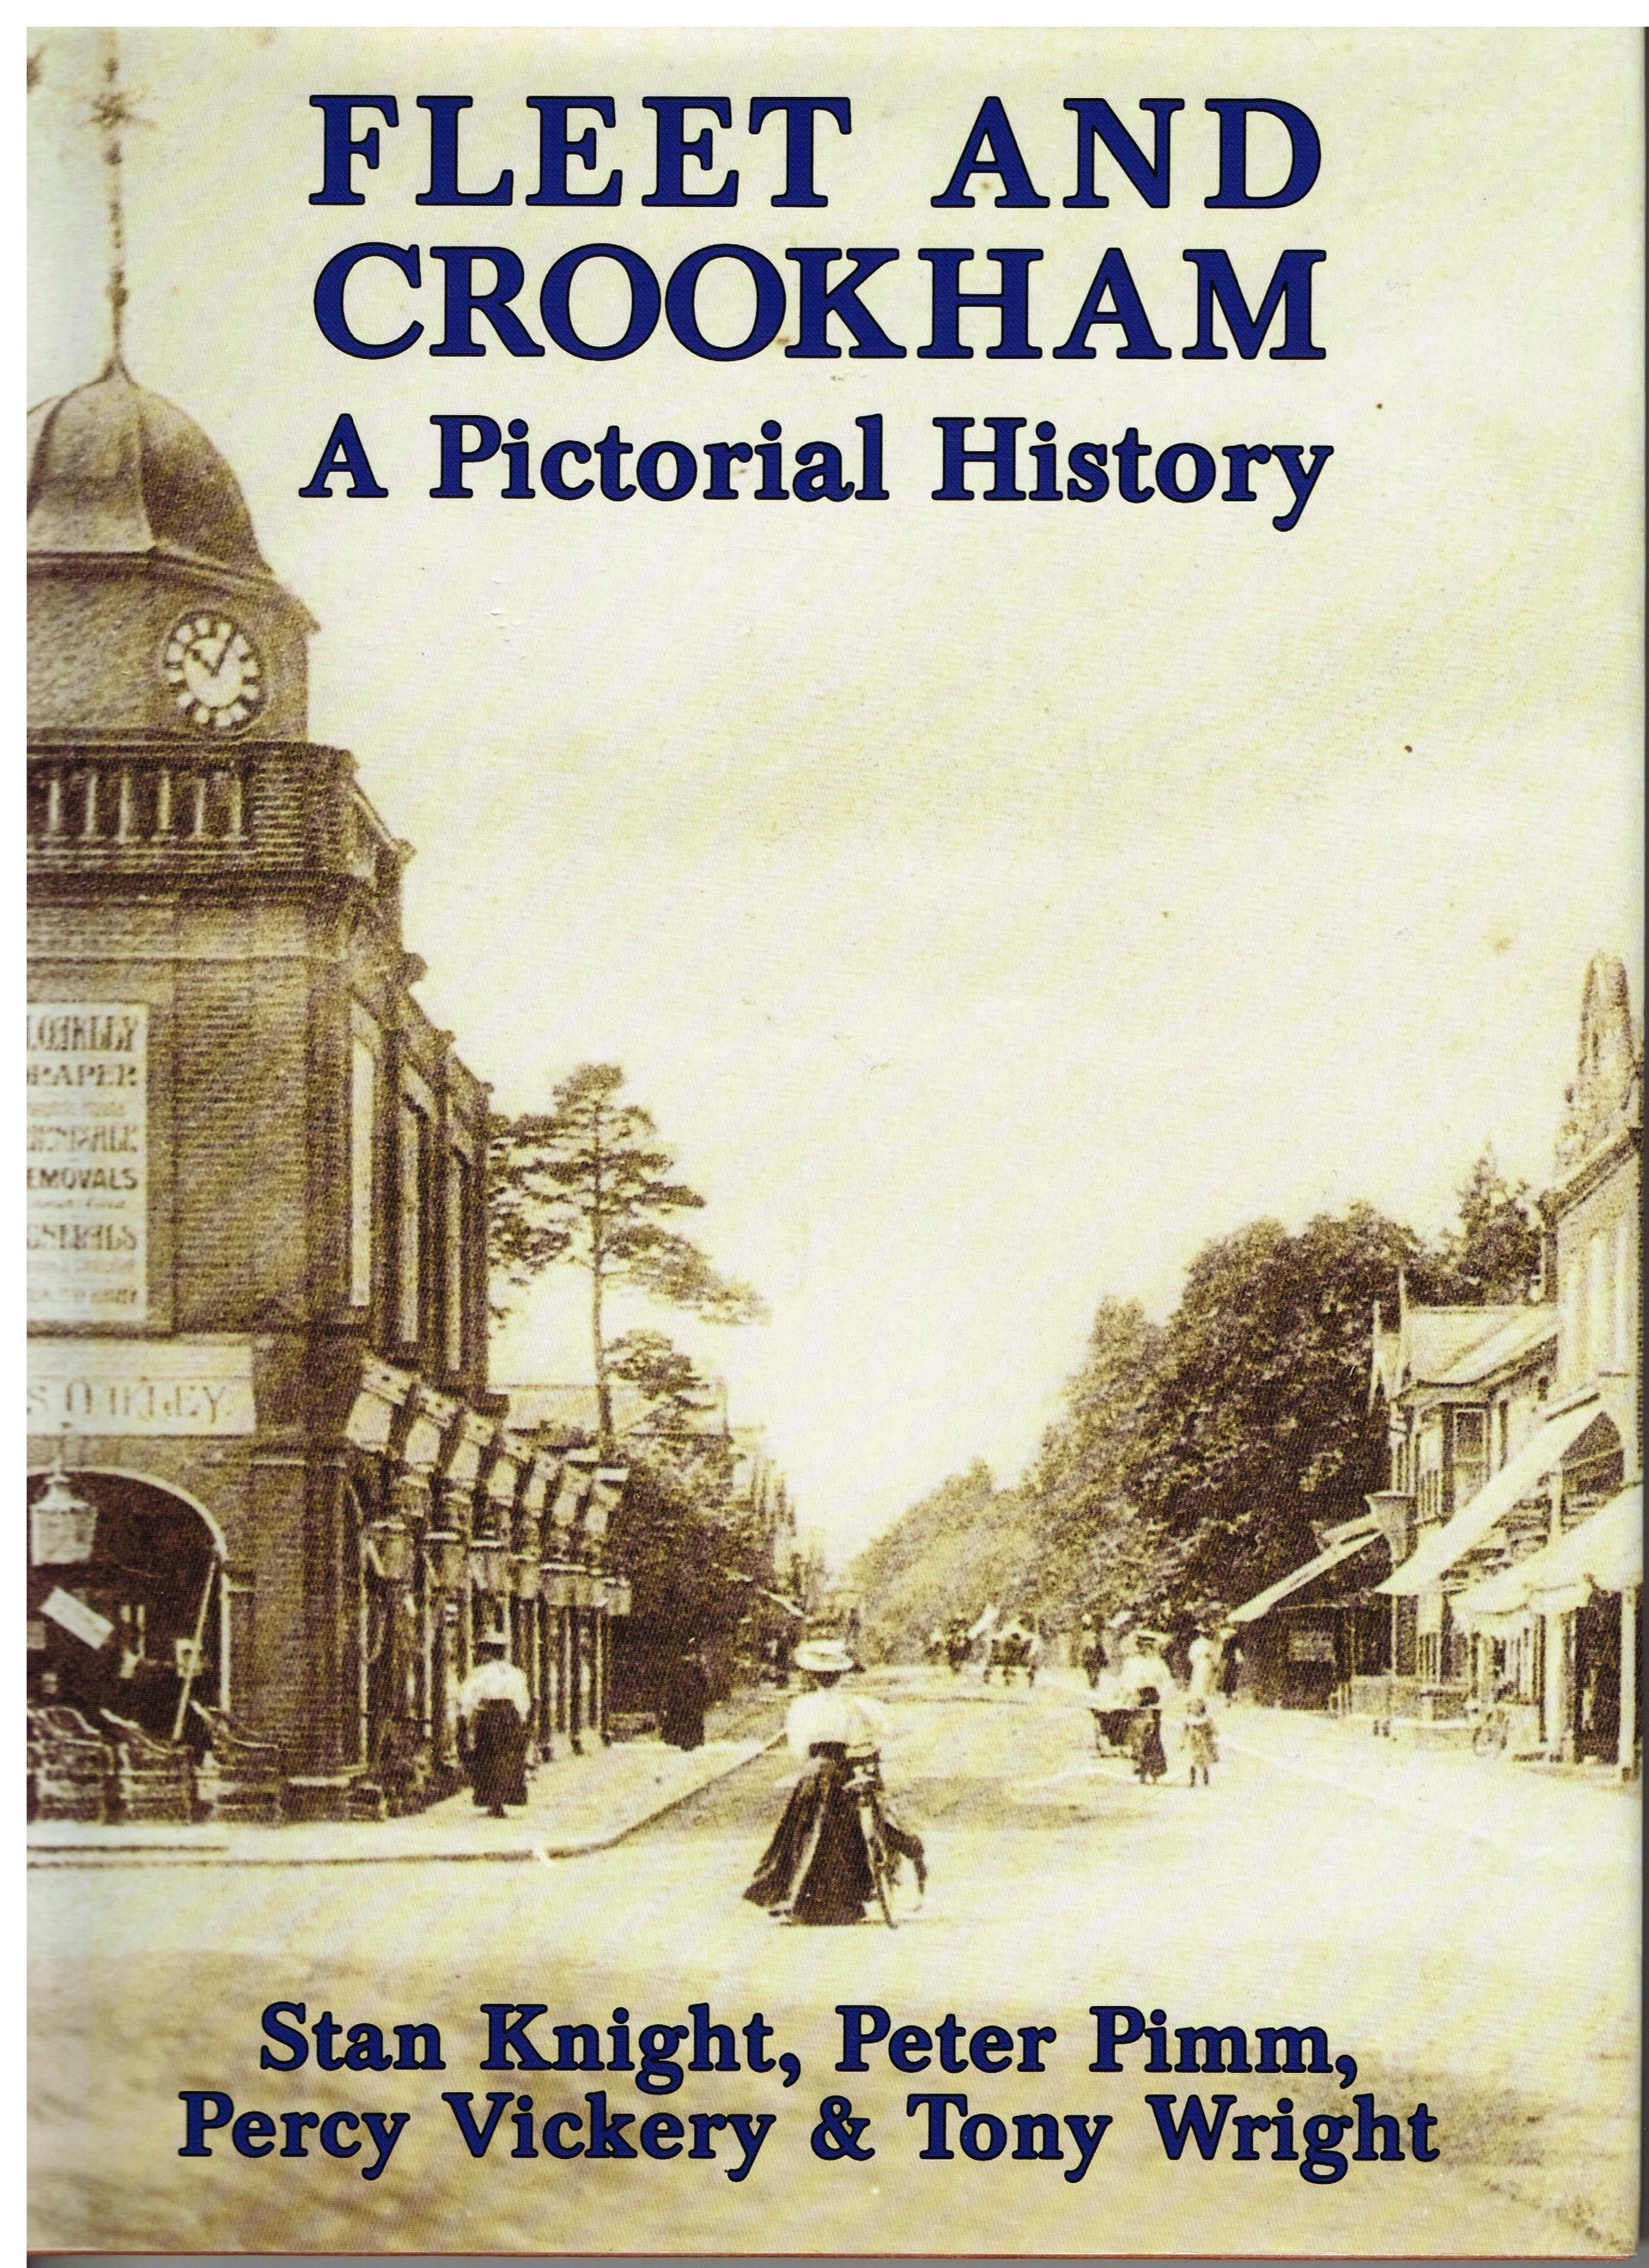 Fleet and Crookham Local History Group Publications and sources